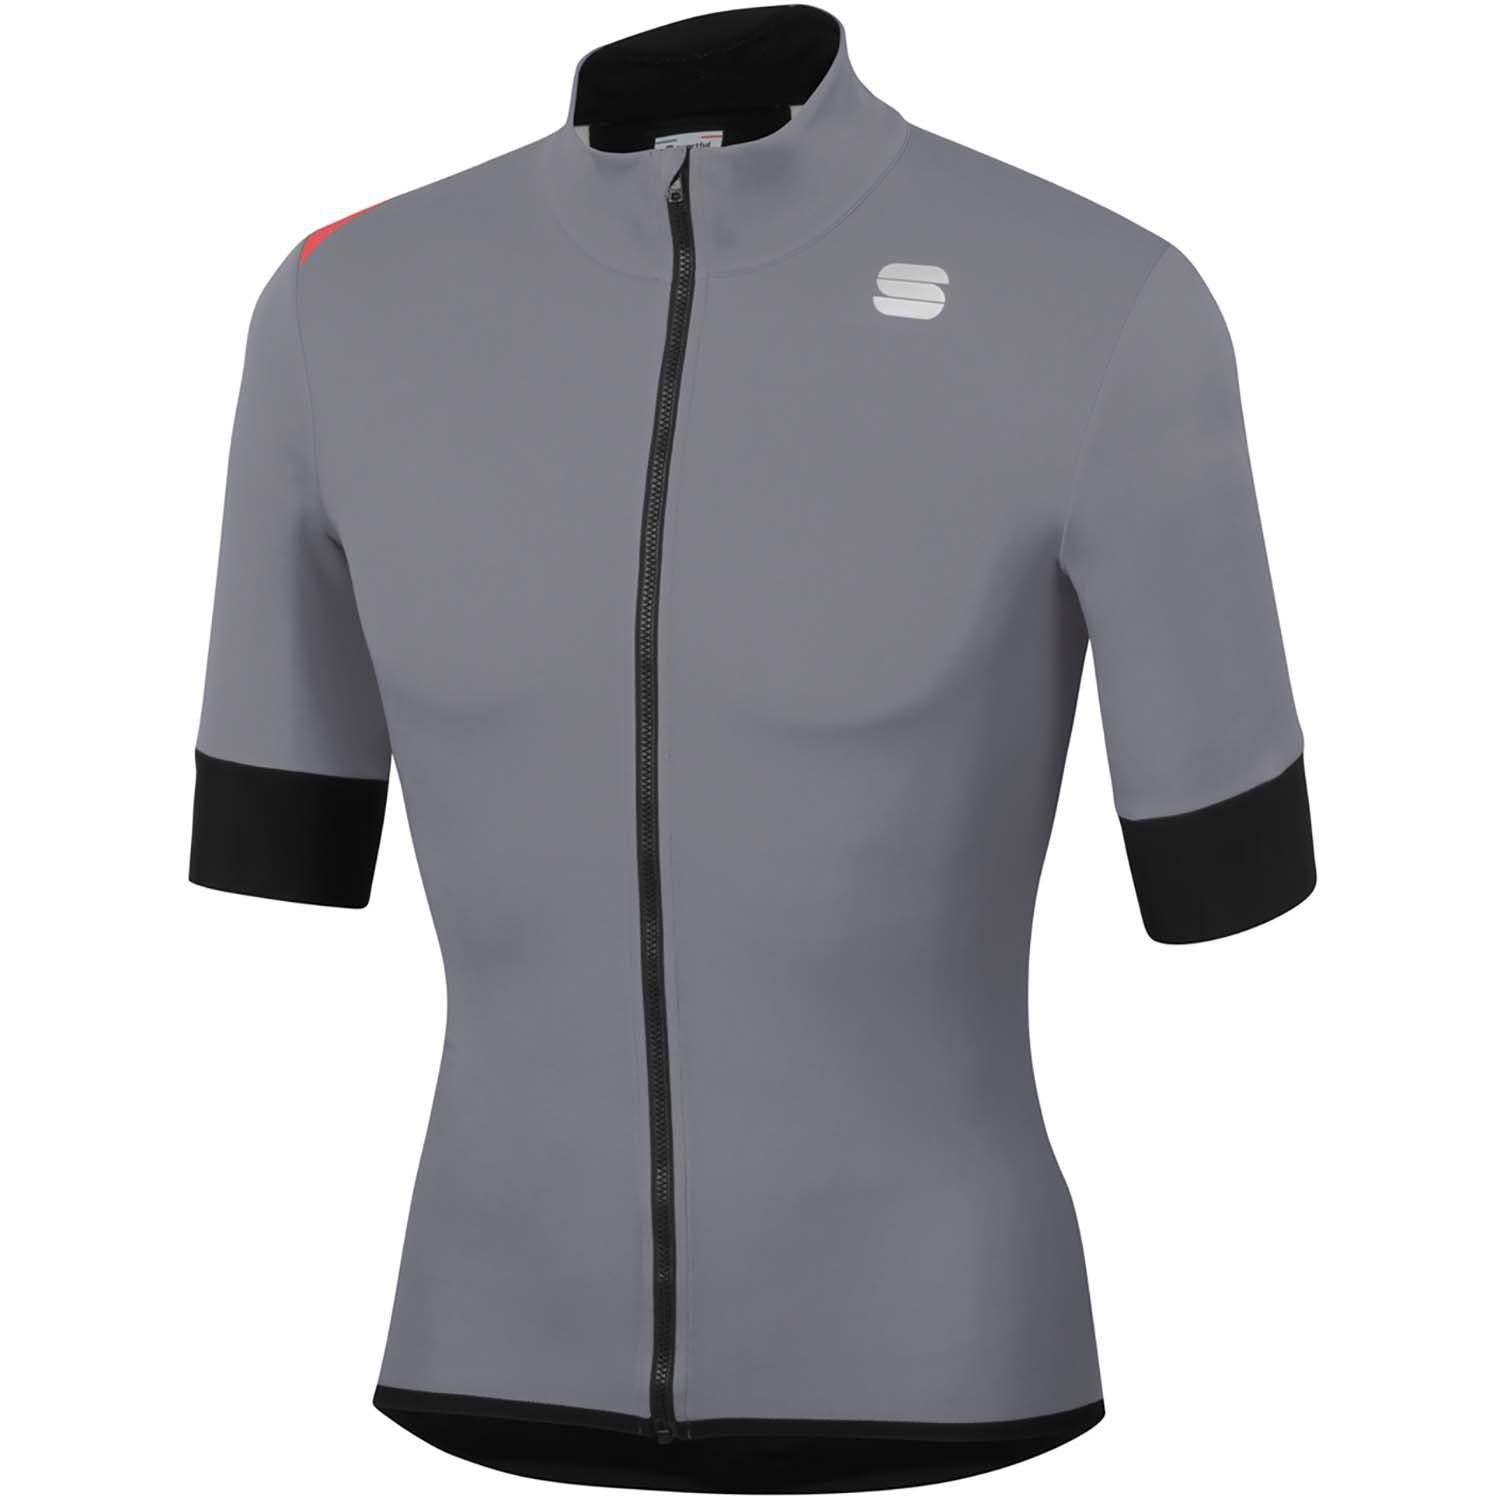 Sportful-Sportful Fiandre Light NoRain Short Sleeve Jacket-Cement-S-SF200222502-saddleback-elite-performance-cycling